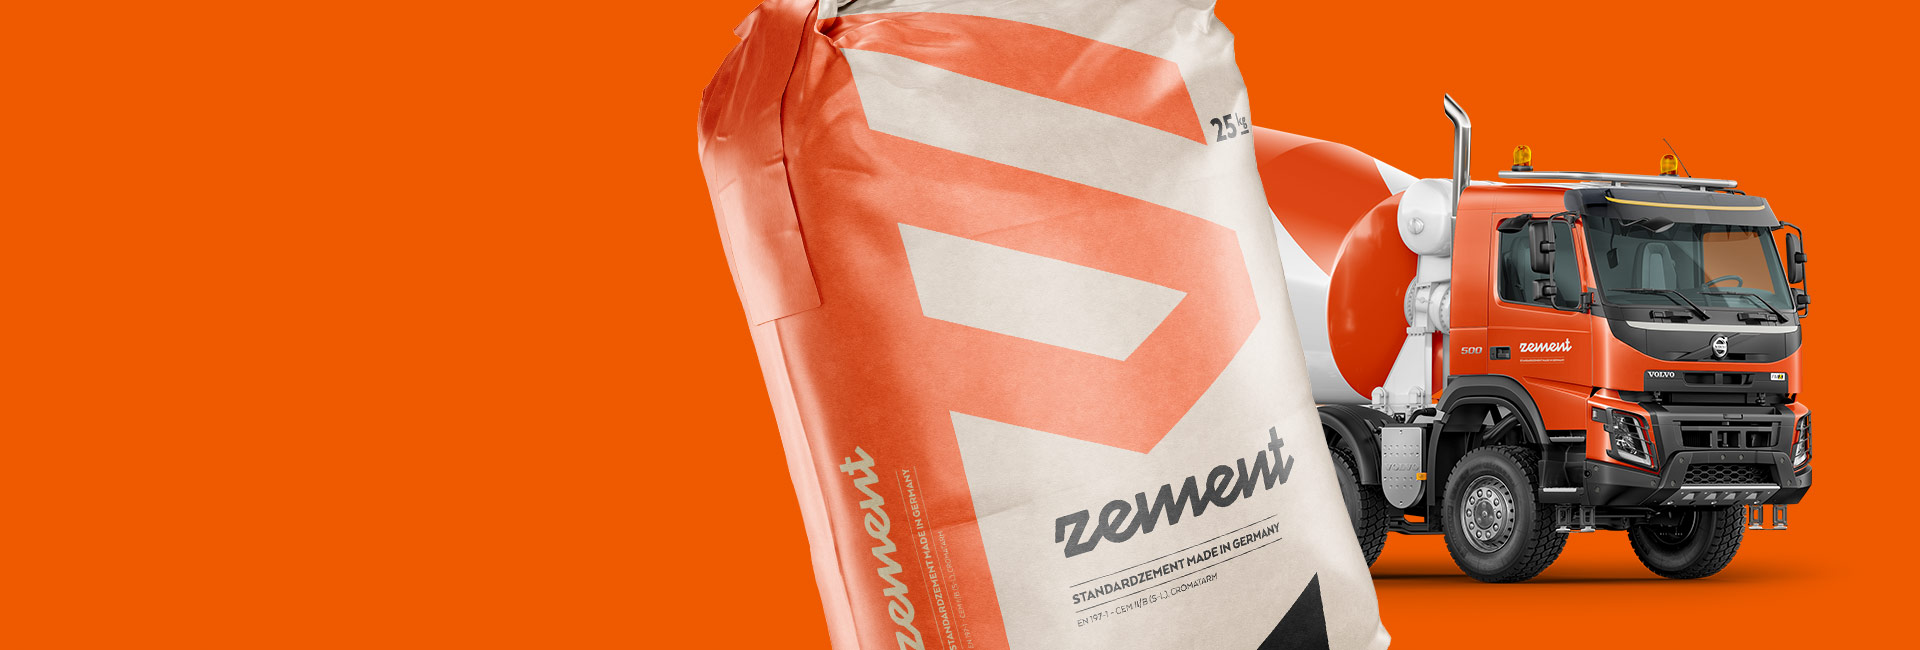 cement packaging design intro